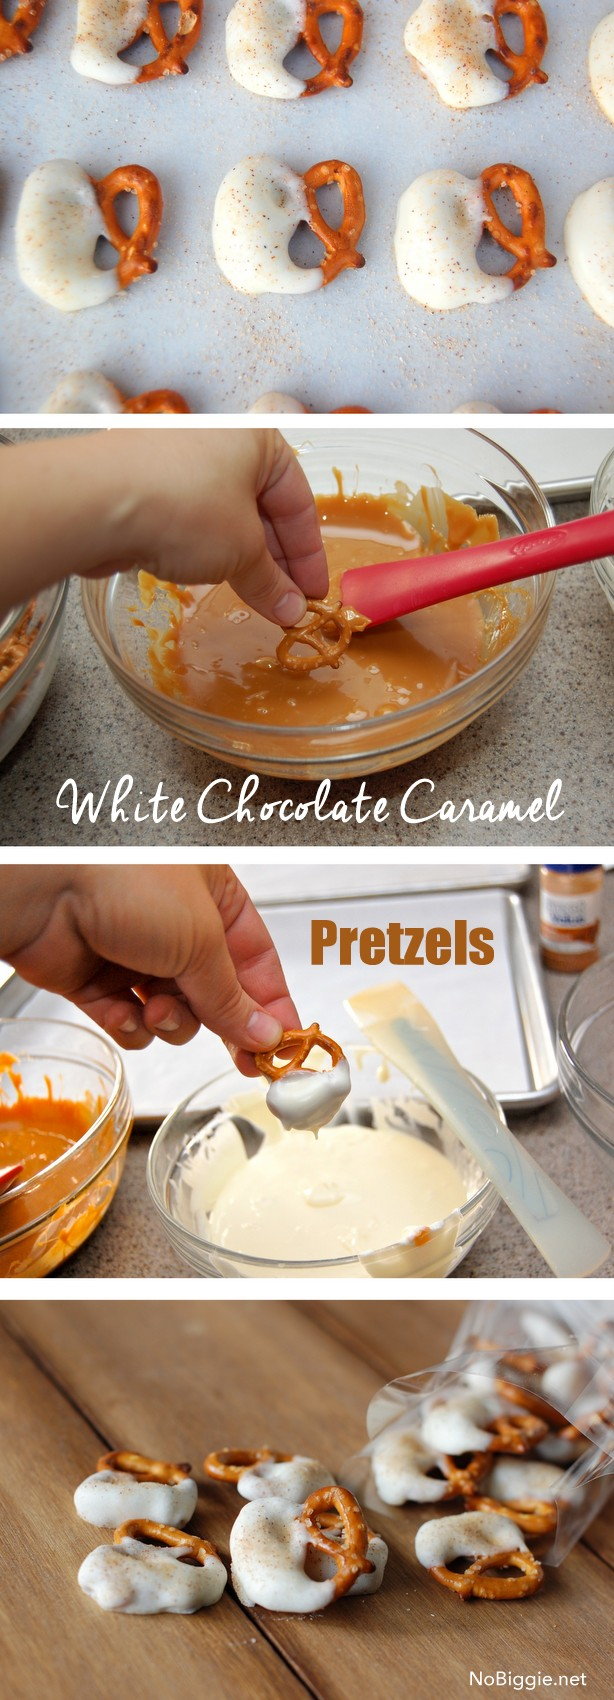 how to make caramel white chocolate pretzels | NoBiggie.net